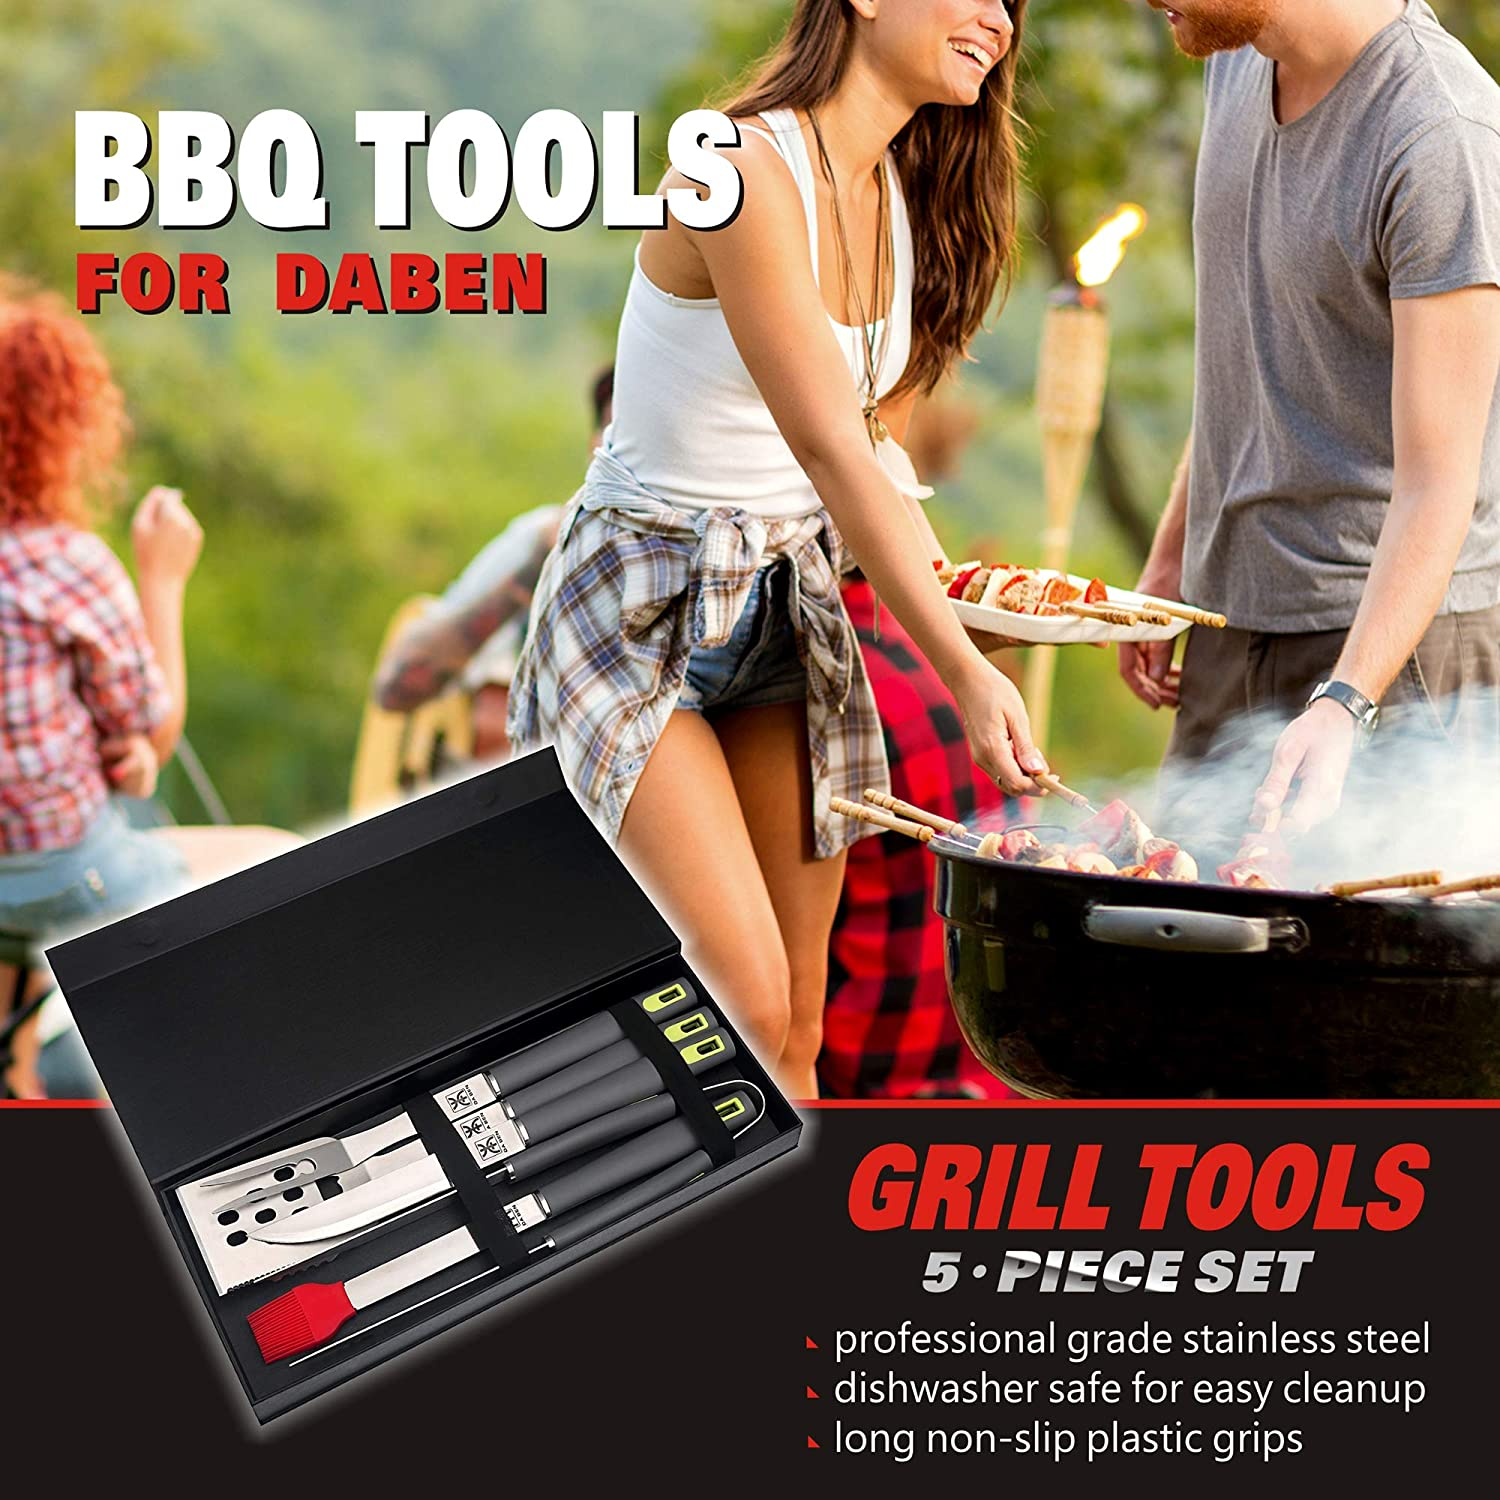 DaBen Stainless Steel BBQ Grill Tools Set 5 Pack